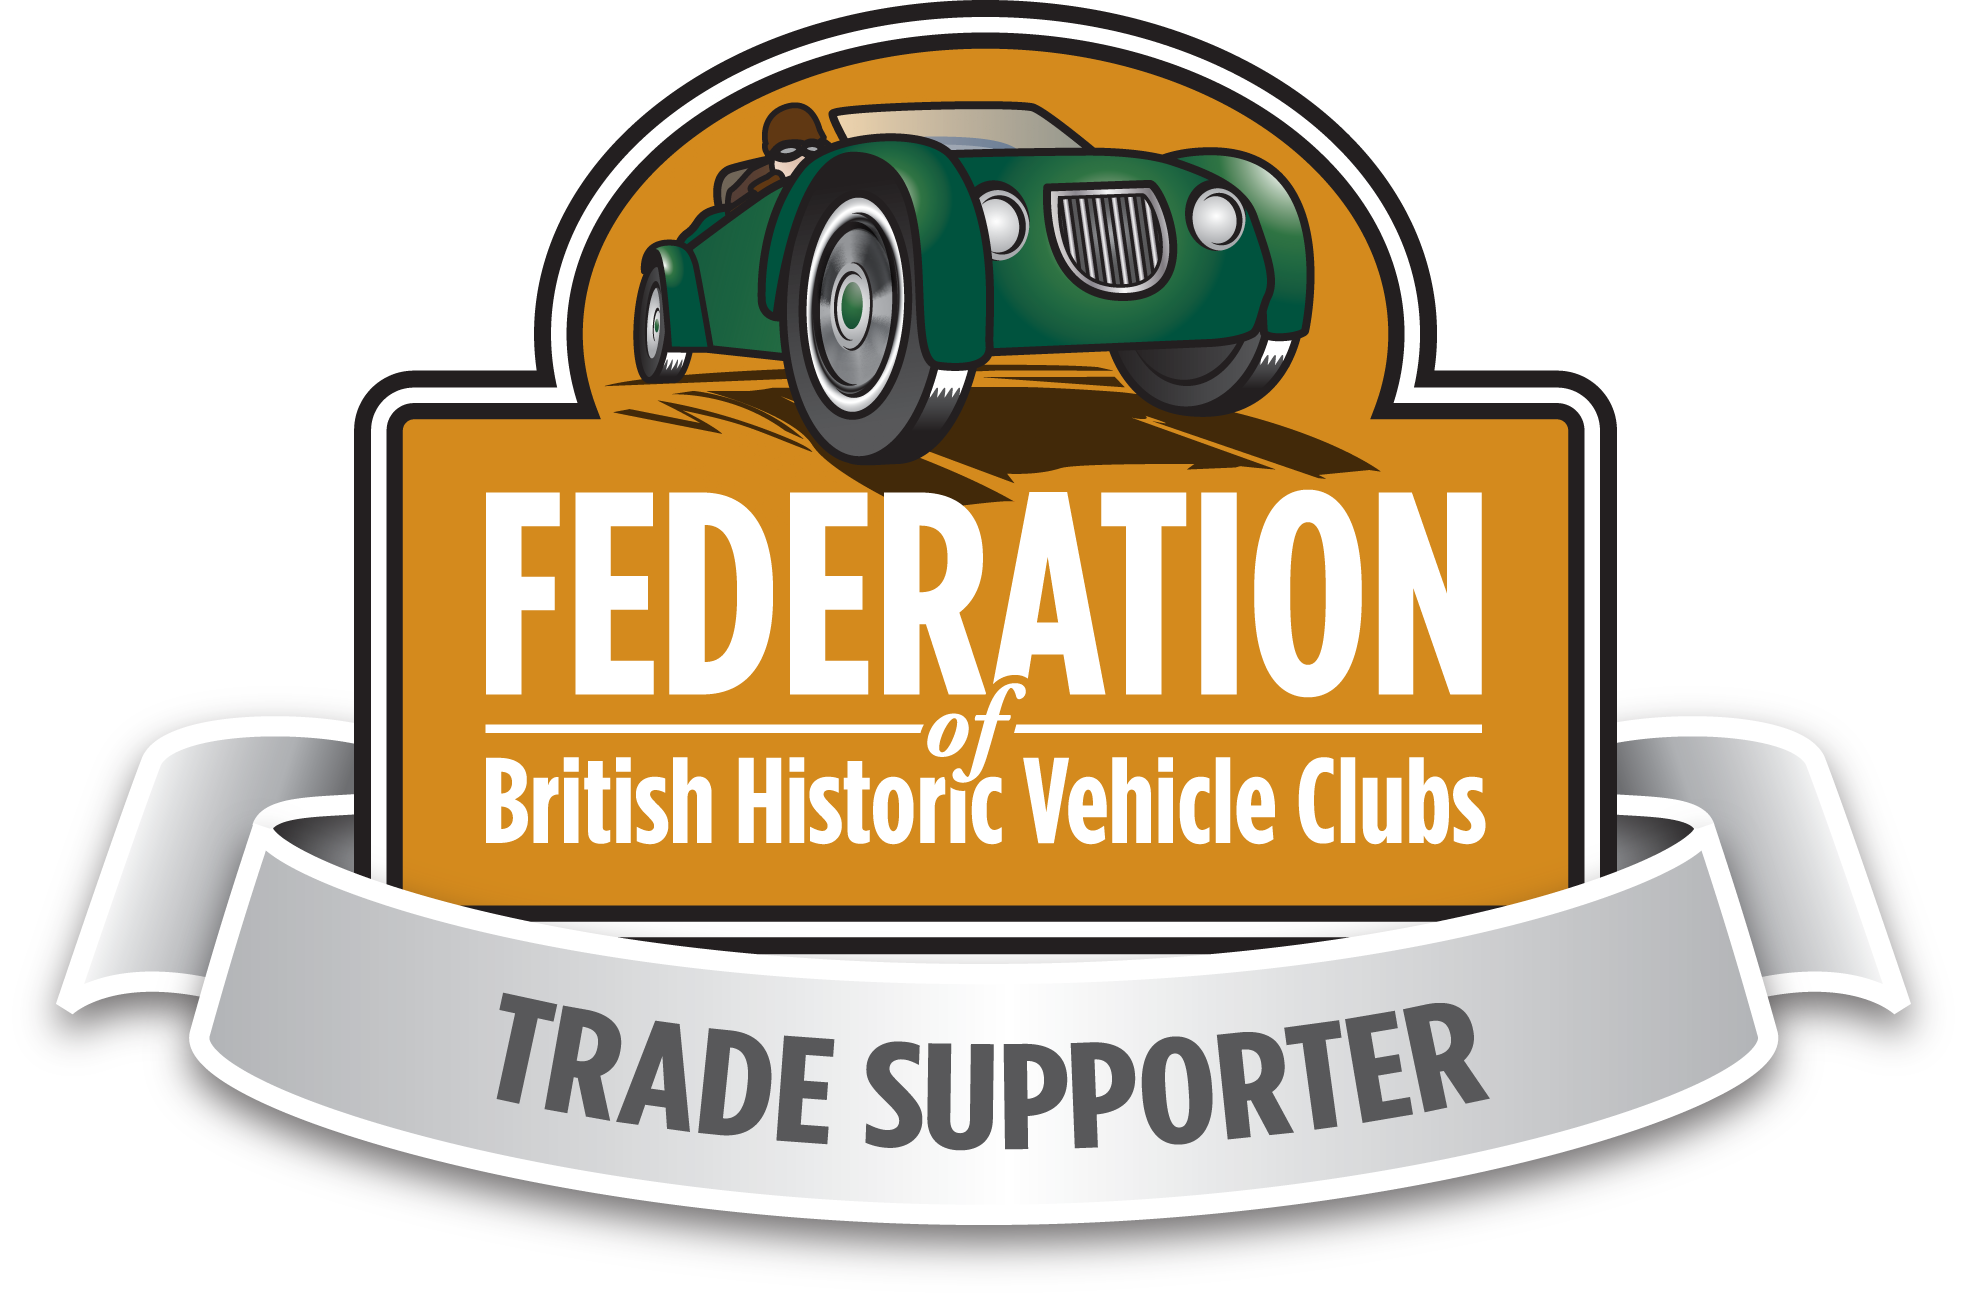 Trade Supporter - Federation of British Historic Vehicle Clubs